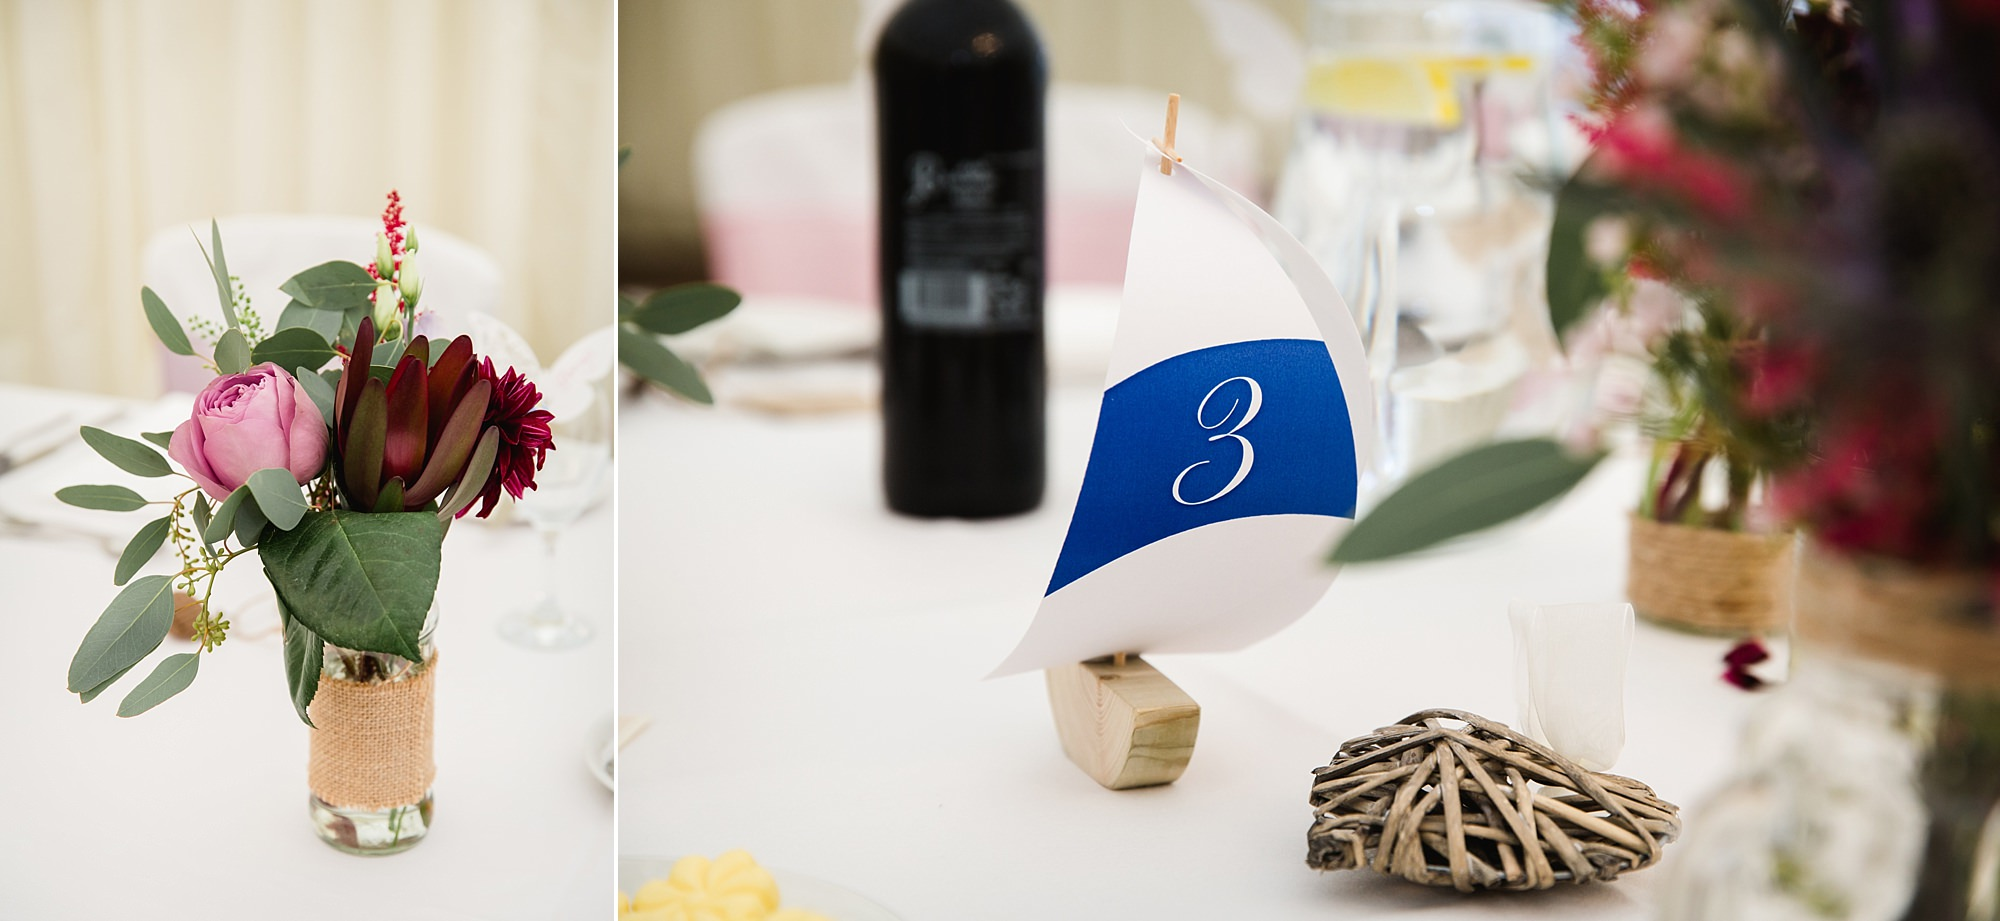 A fun wedding at Plas Isaf sailing boat themed table numbers